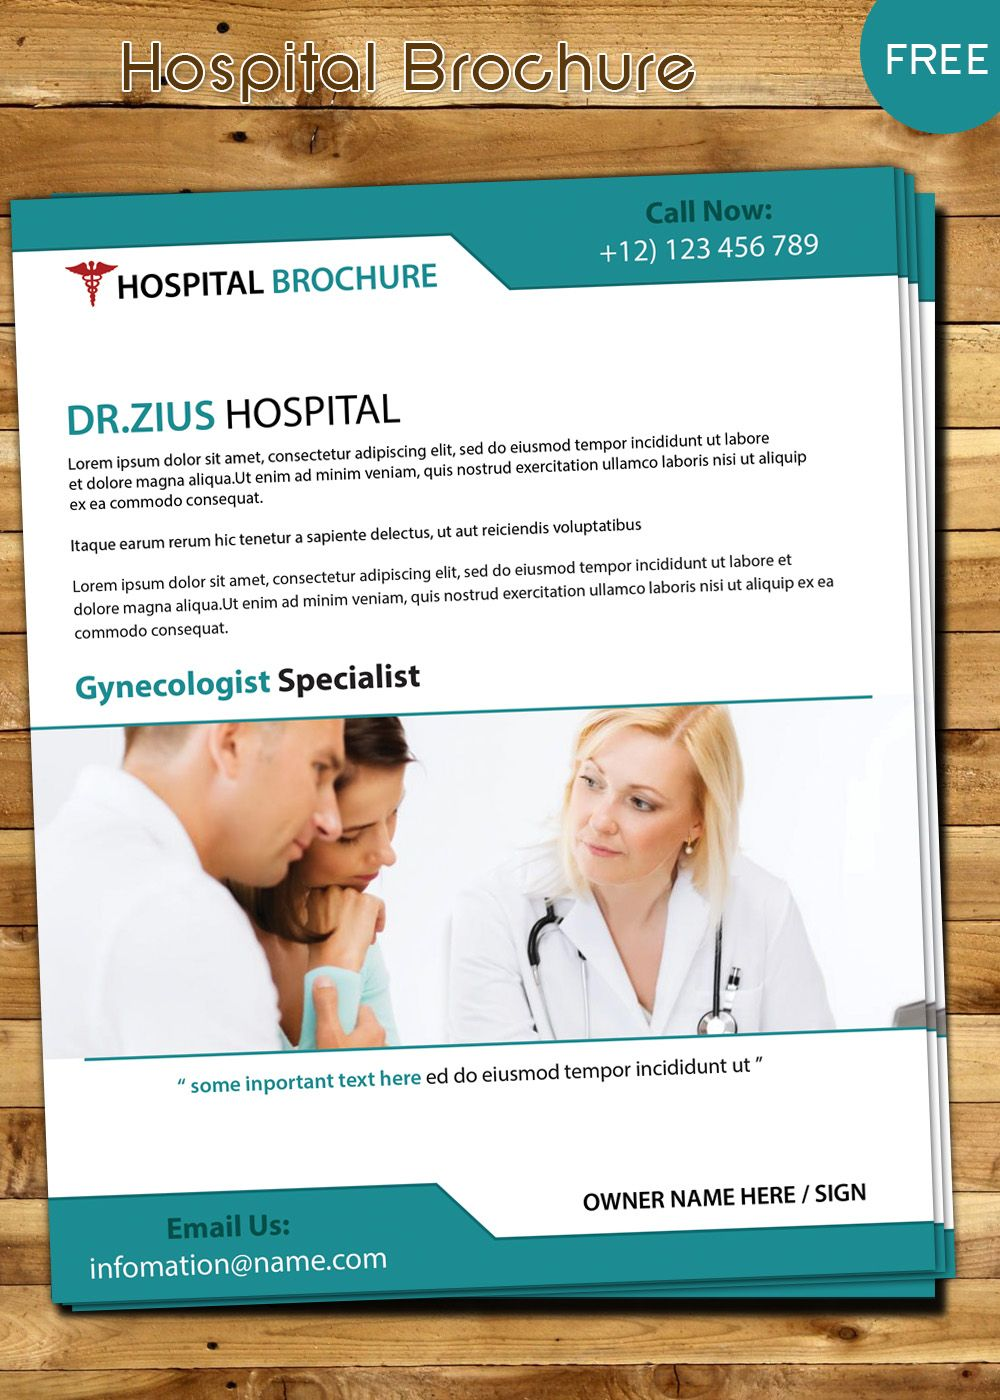 free hospital vector brochure download brochure design pinterest